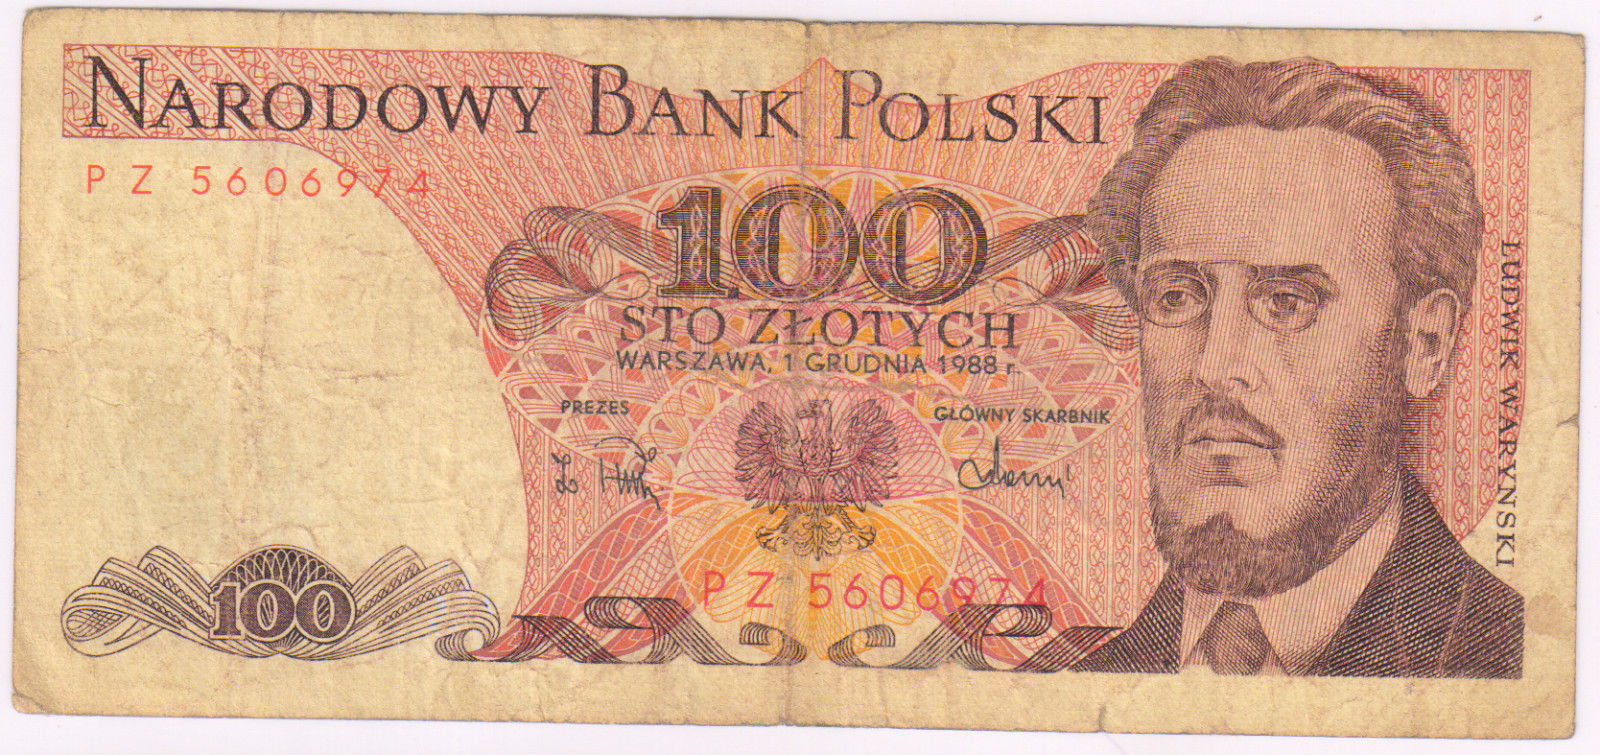 Poland : 100 zlotych 1988 used currency note